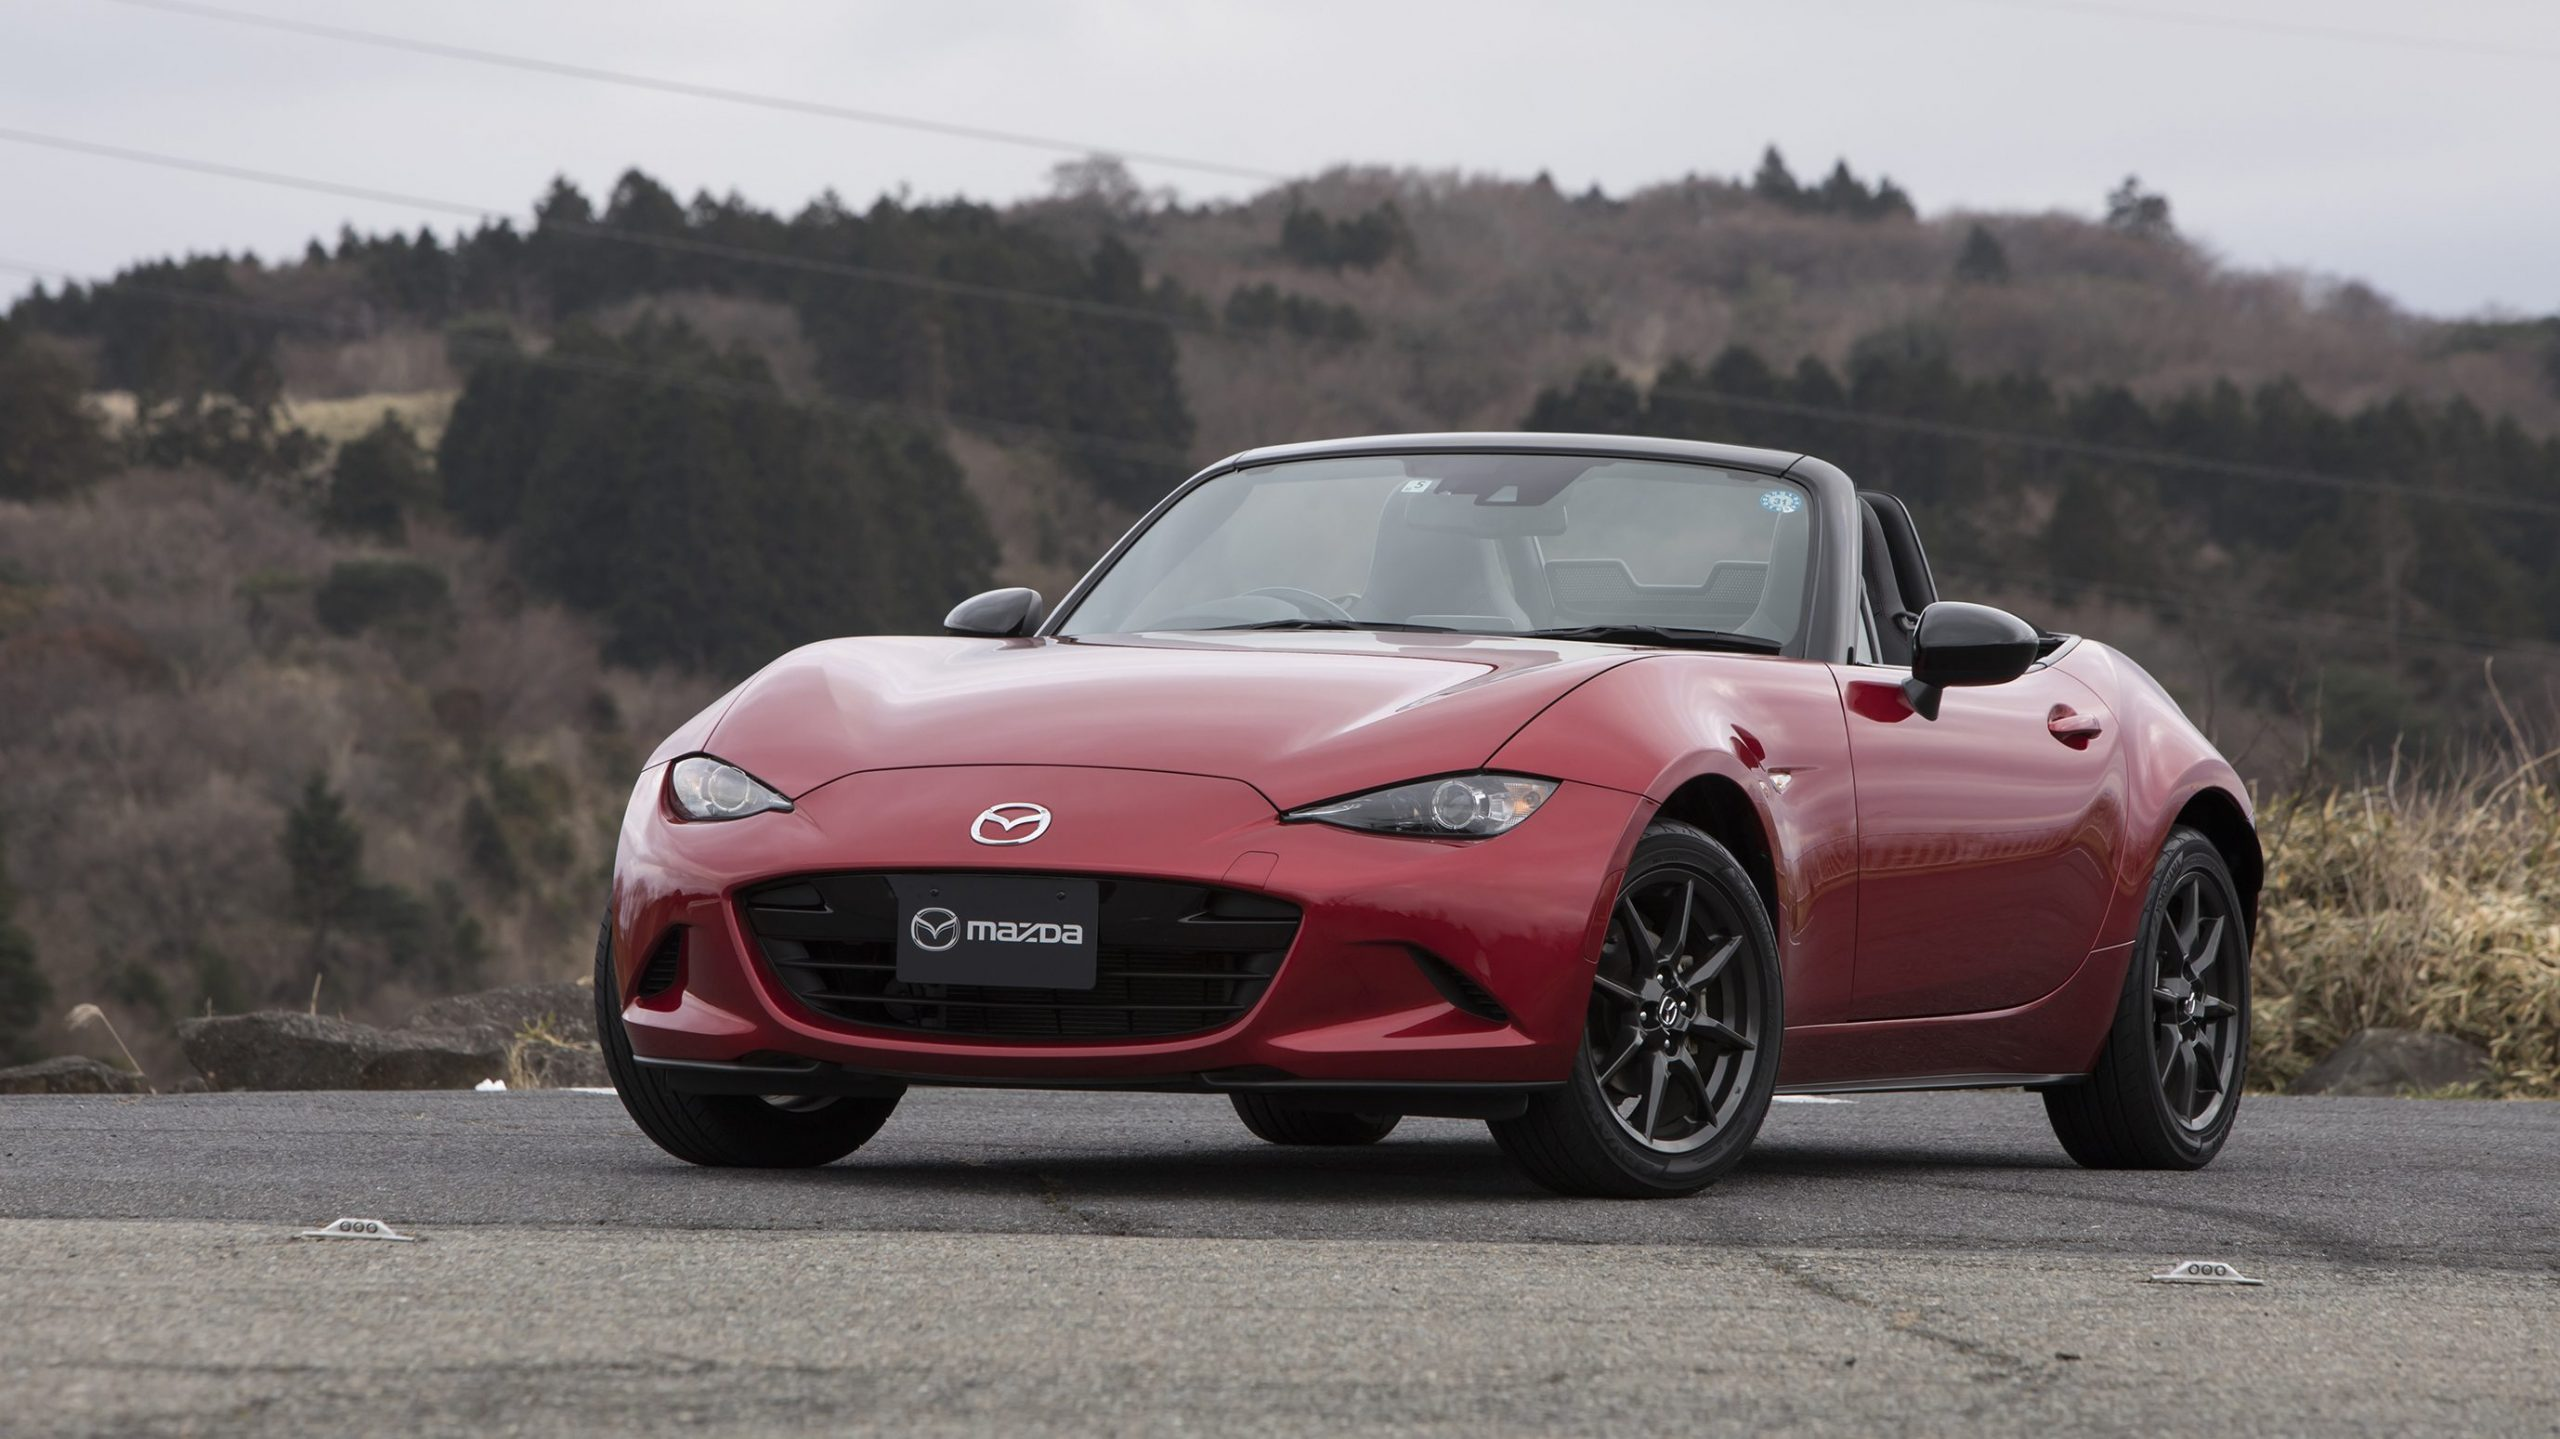 mazda mx-5 convertible in red